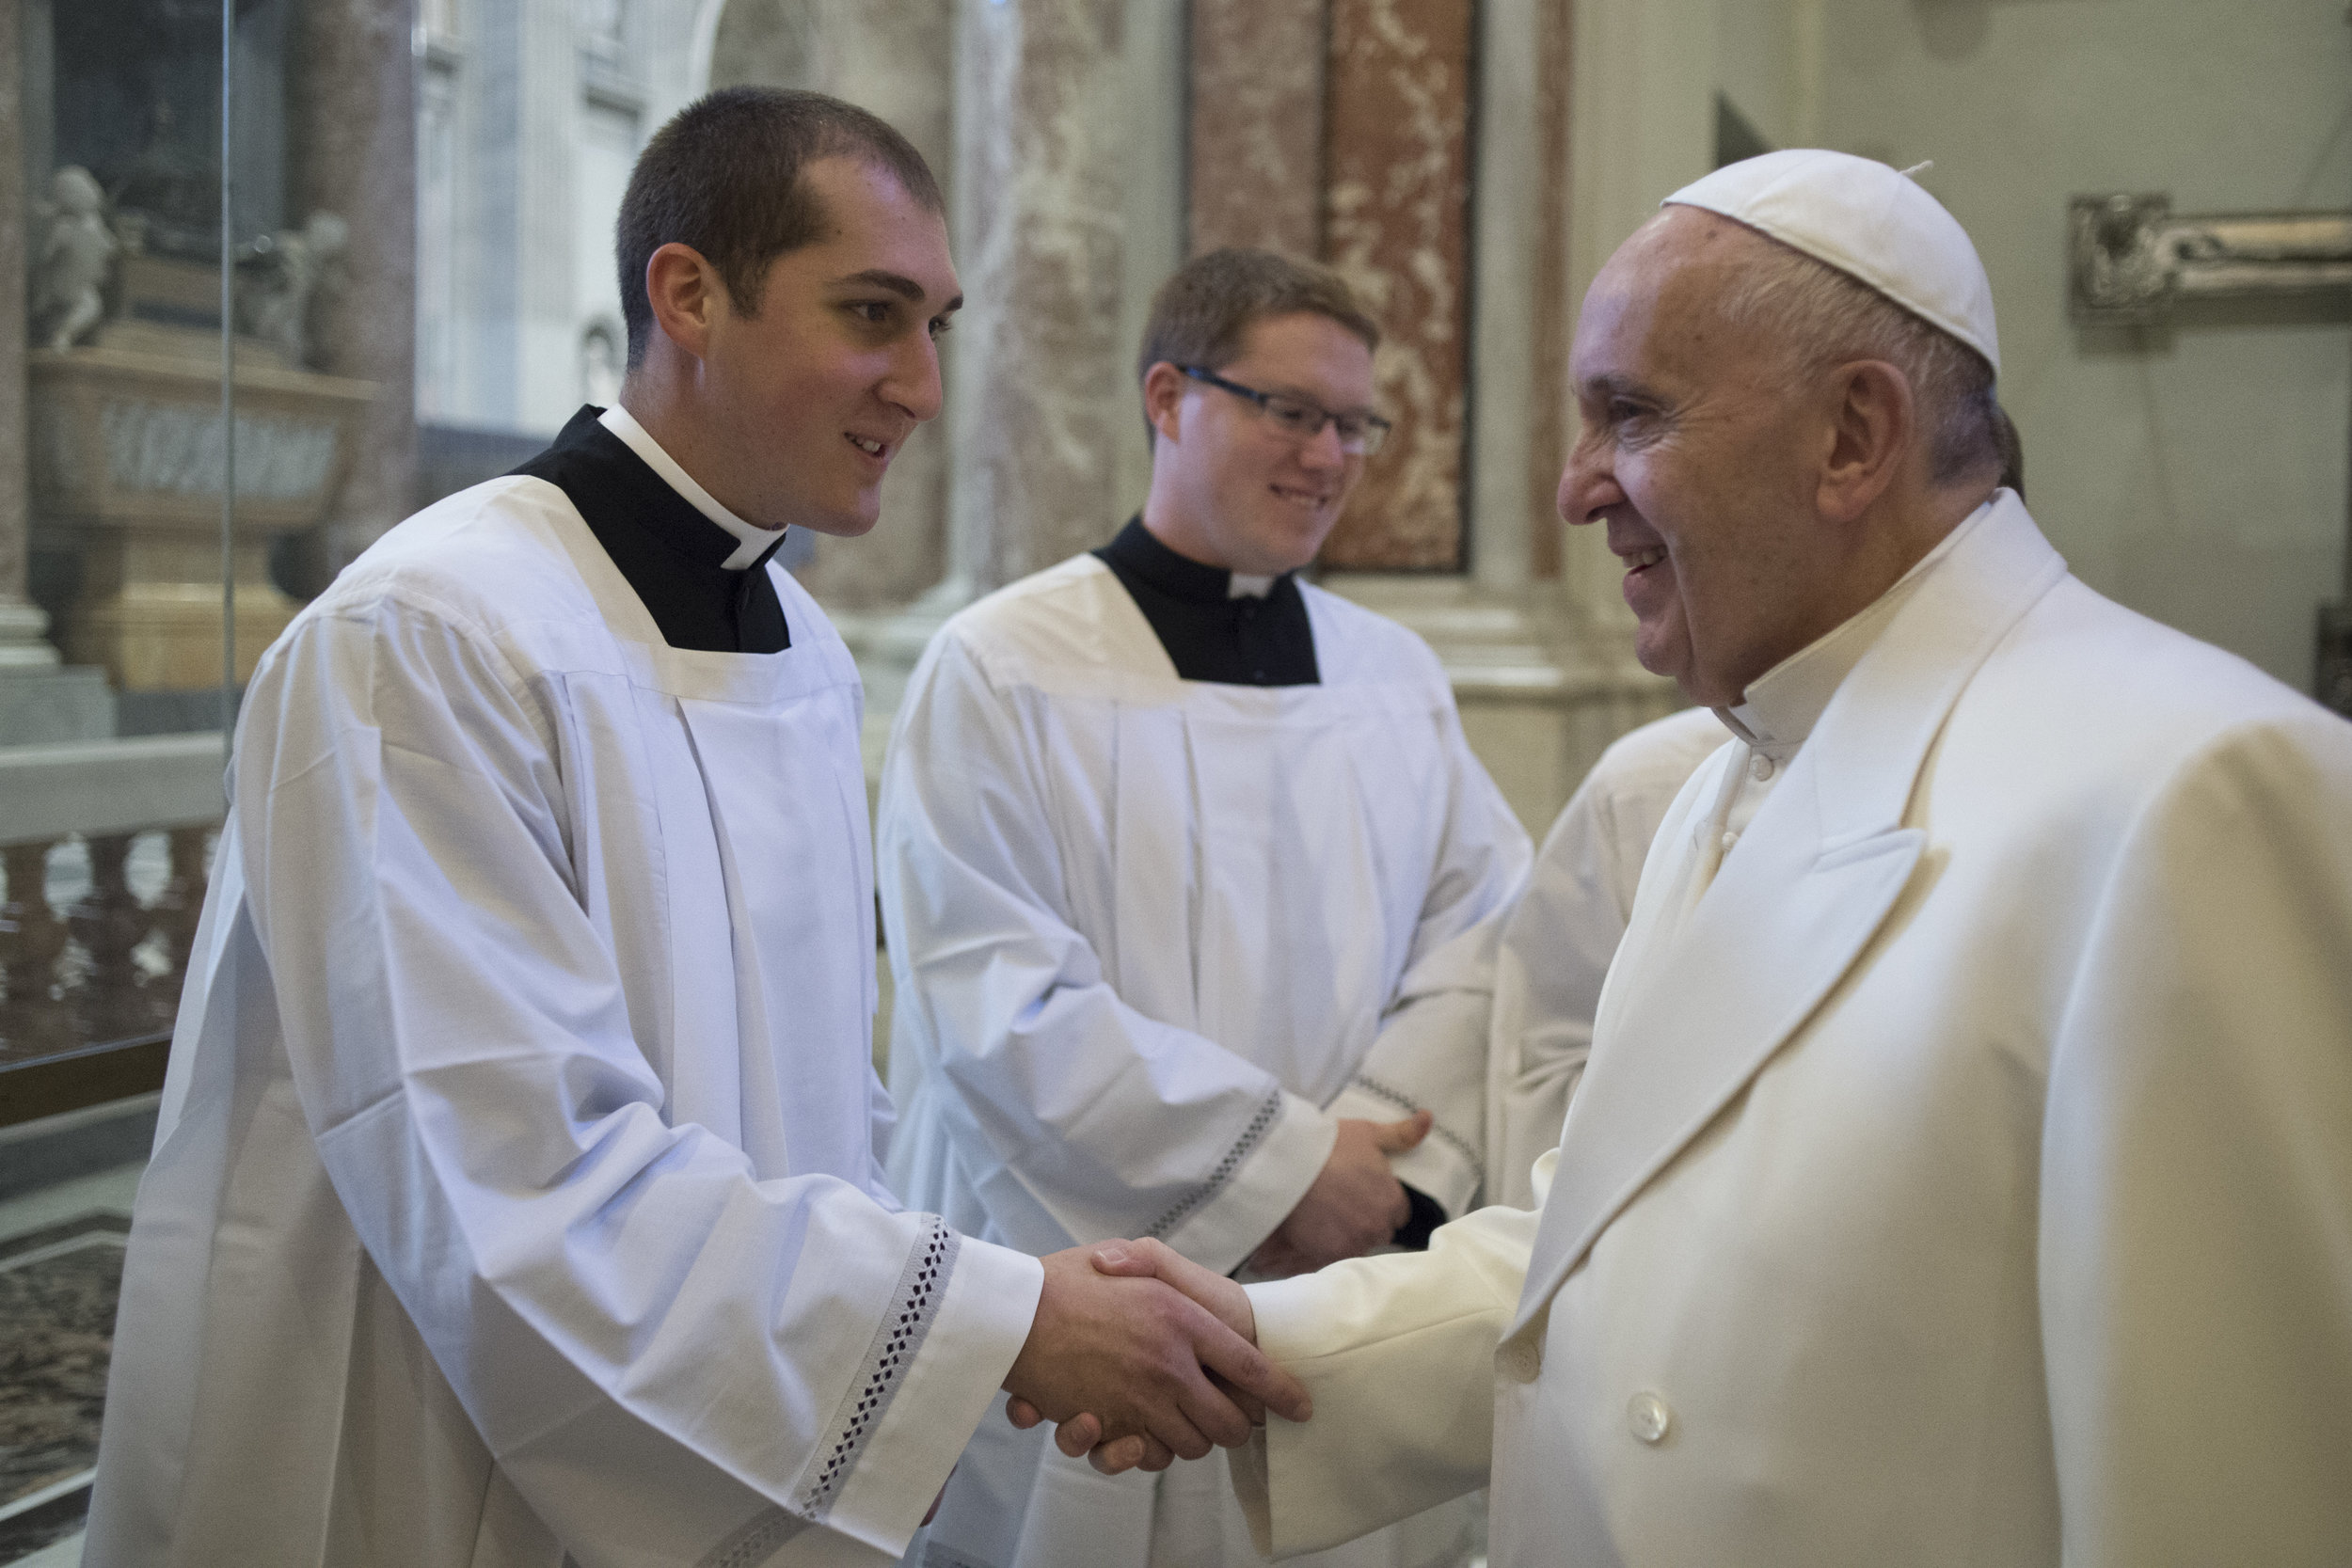 Copy of 00099_27122015 Holy Father Mtg.JPG